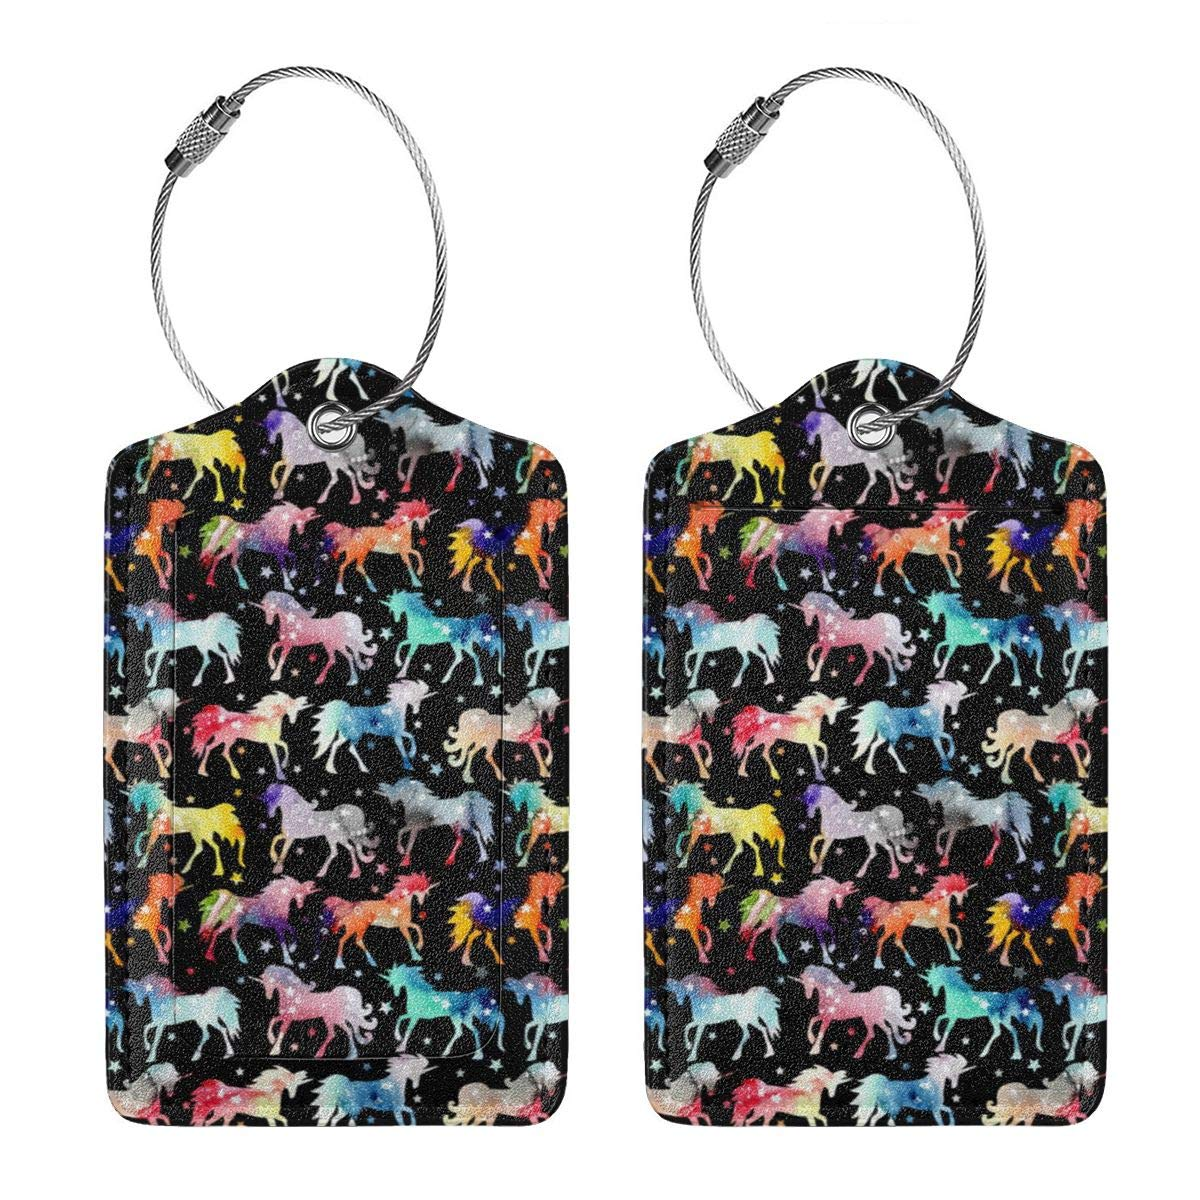 Rainbow Galaxy Unicorns Leather Luggage Tags Baggage Bag Instrument Tag Travel Labels Accessories with Privacy Cover